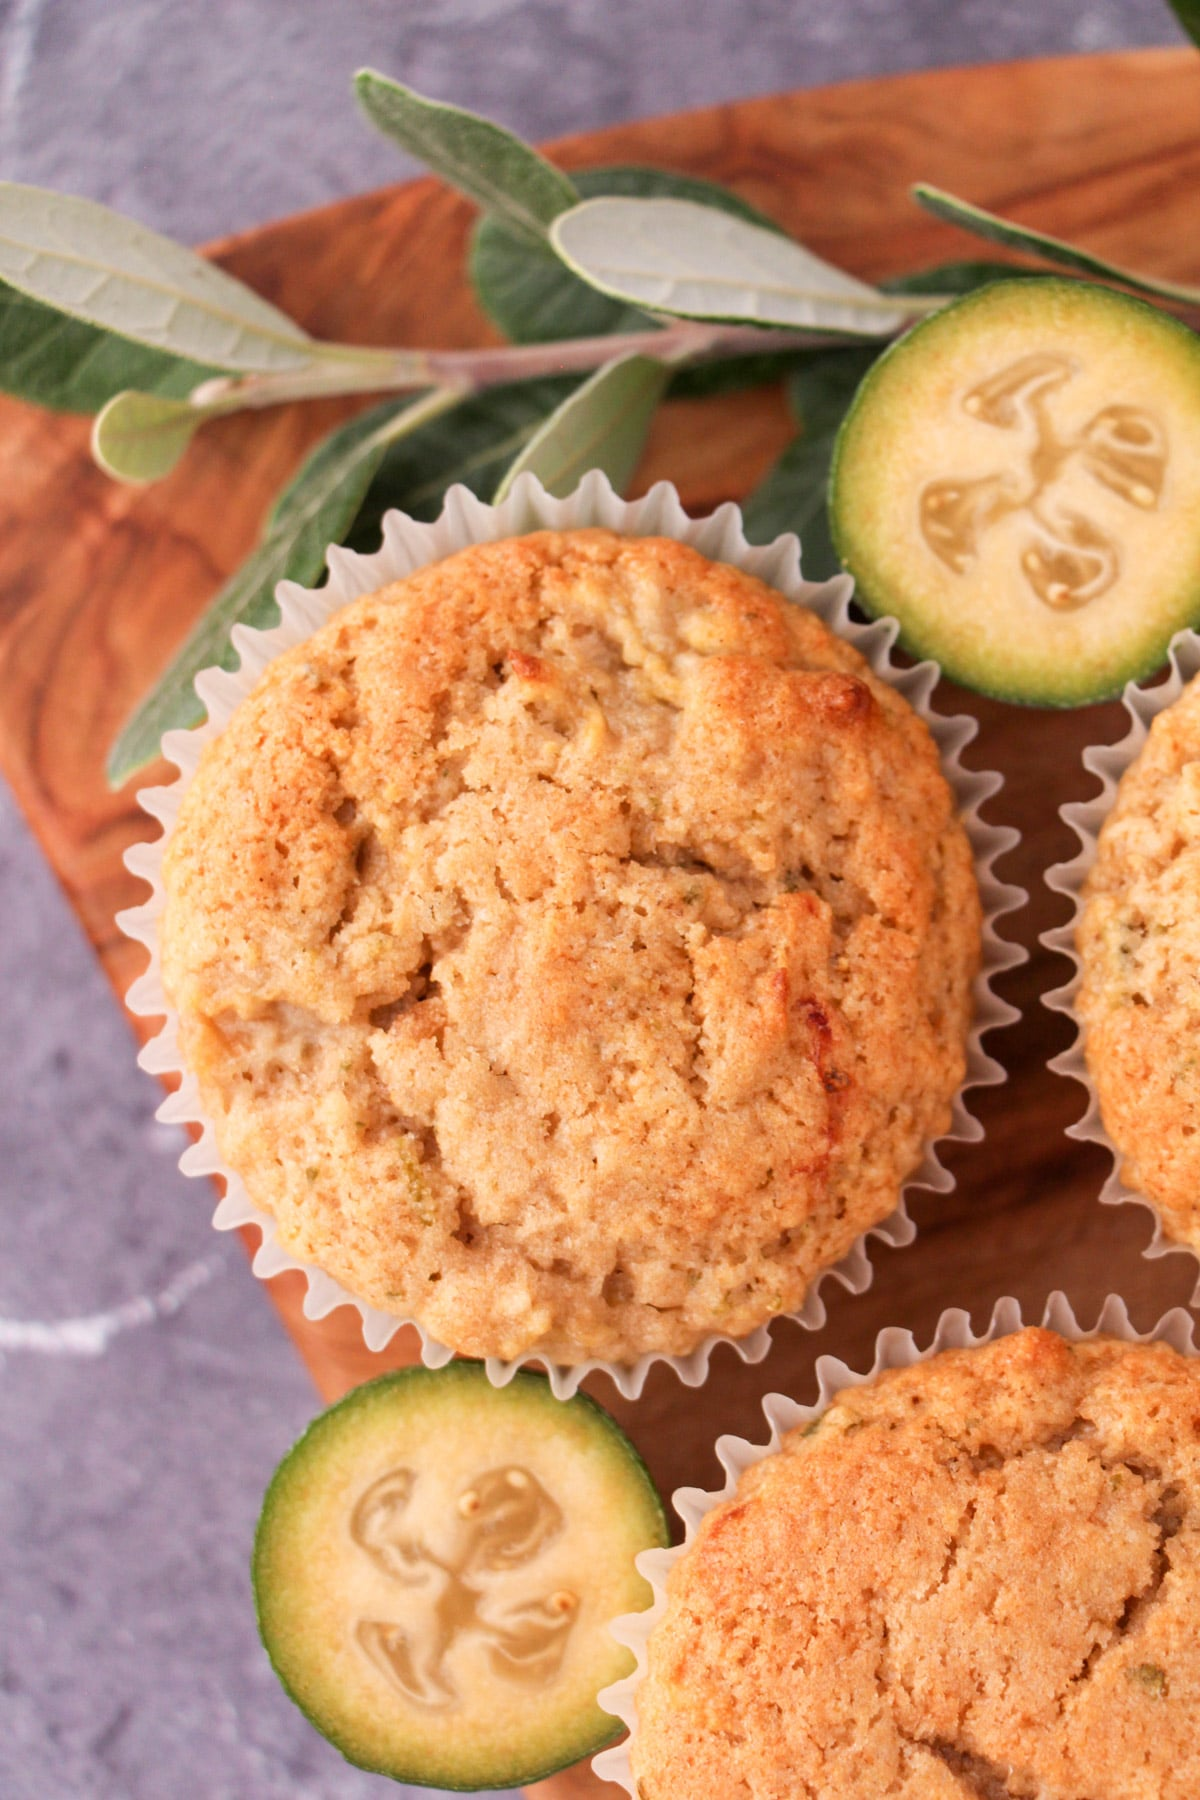 Feijoa muffins on a board with fresh feijoas and feijoa leaves.